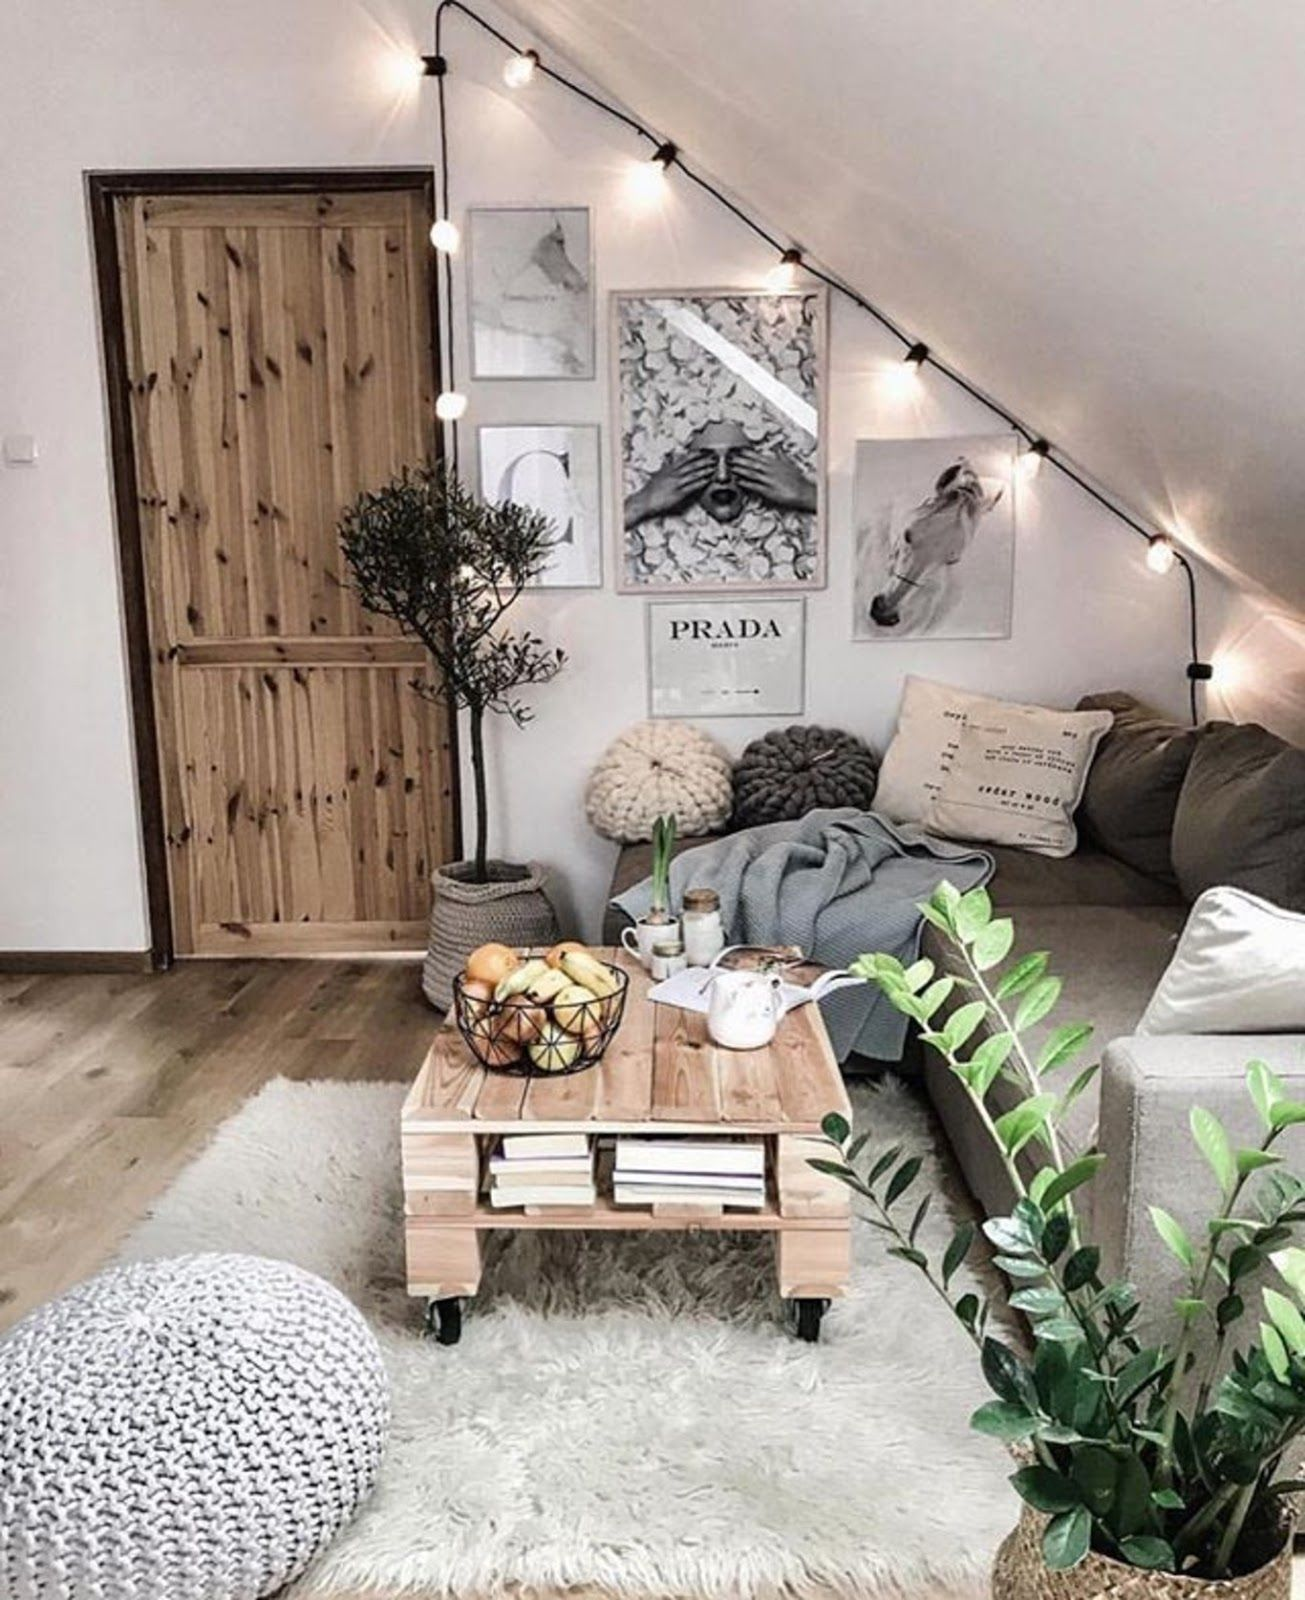 Best Home Decoration Idea To Copy Cozy Room Home Decor Styles Home Decor Living room decor styles